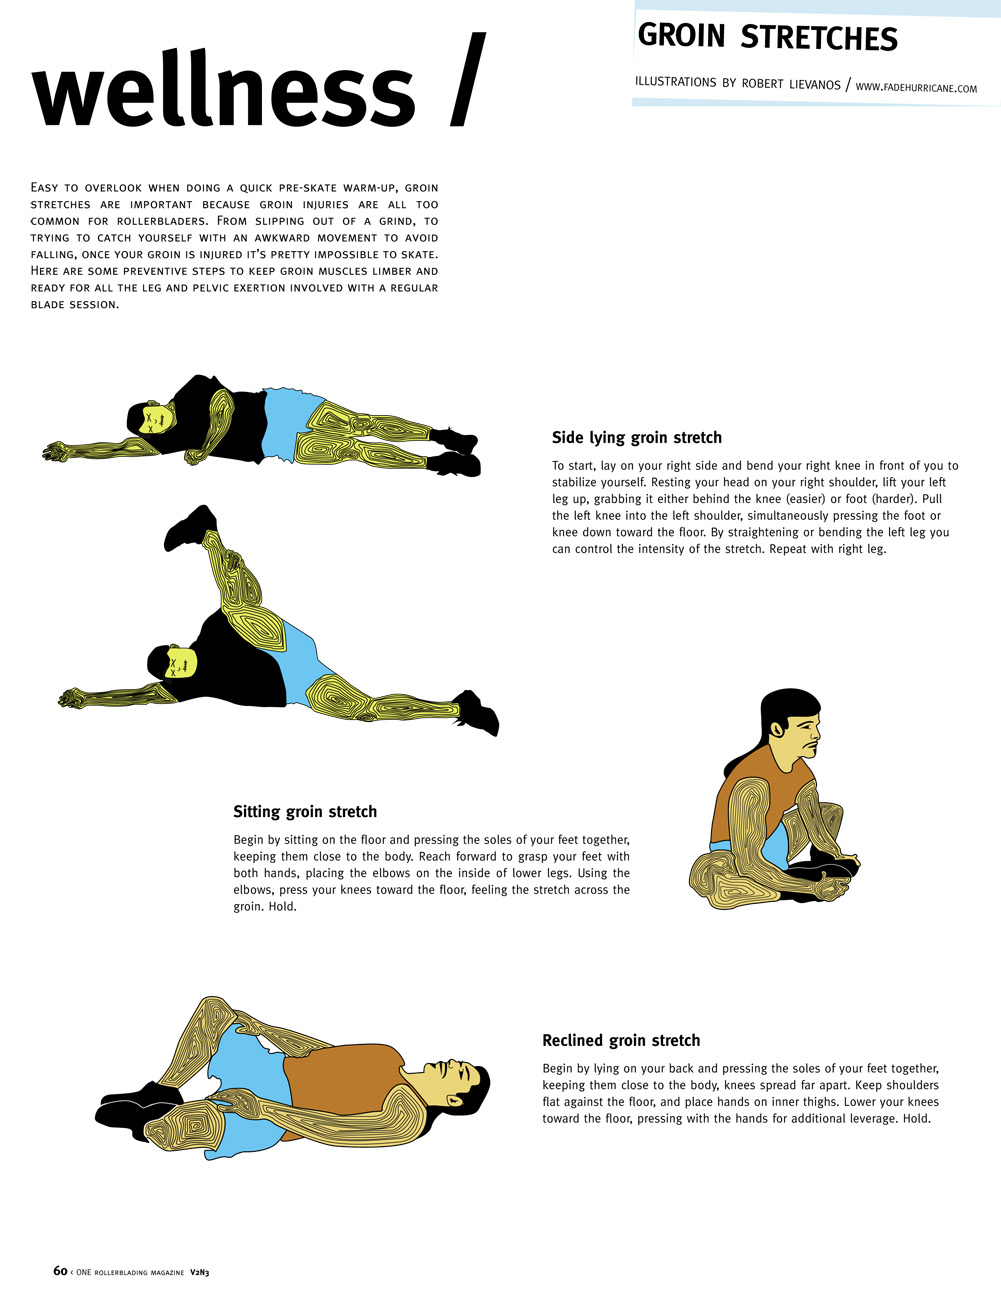 #5: Groin Stretches